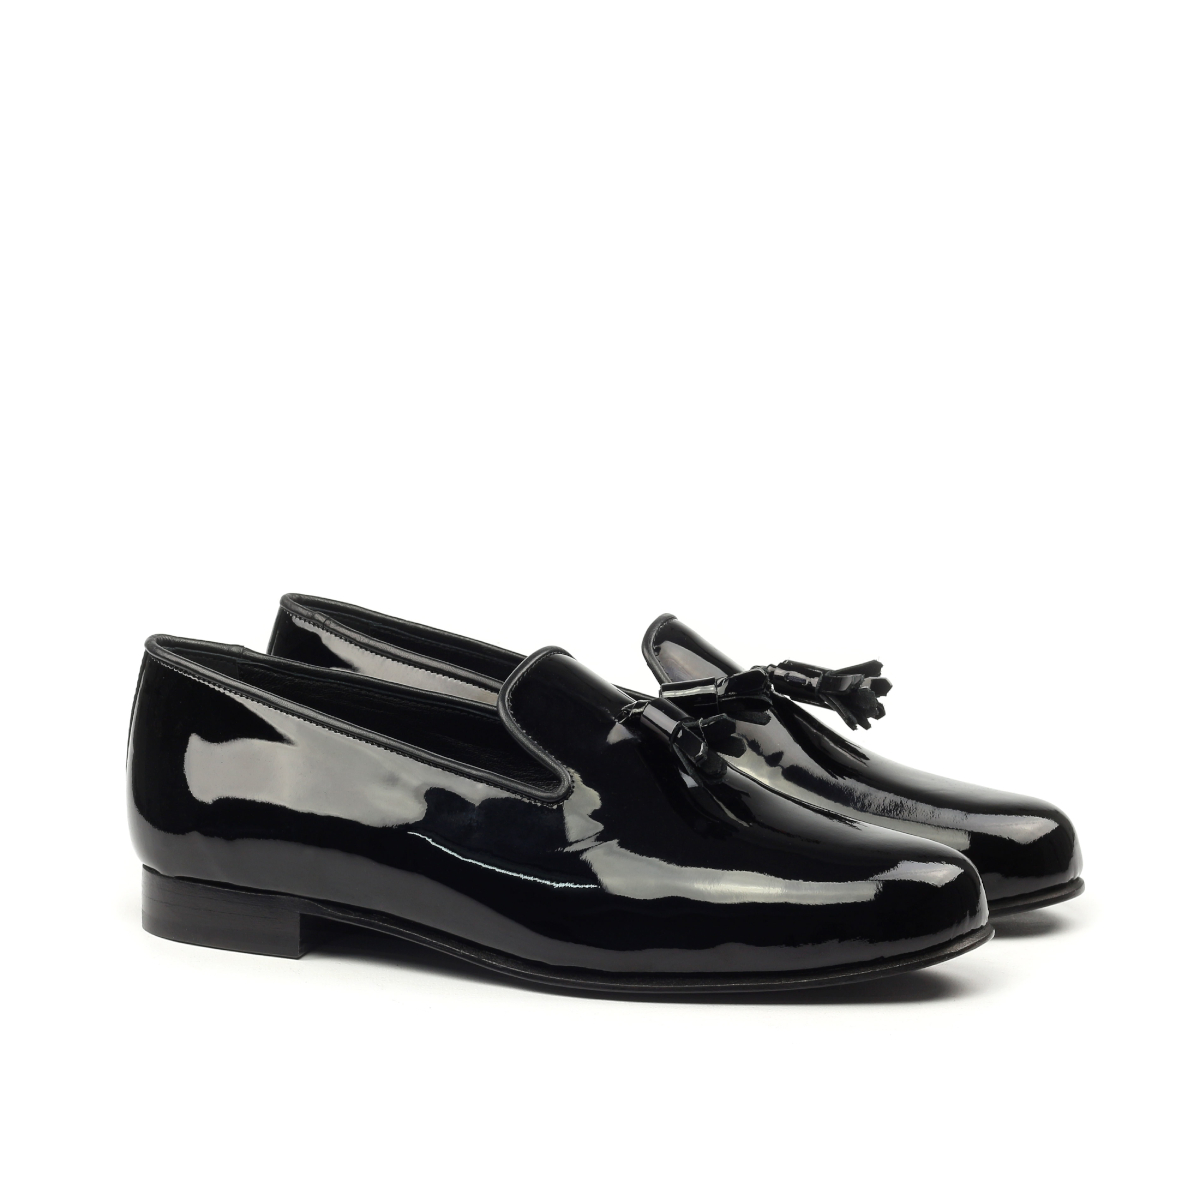 Black patent slippers